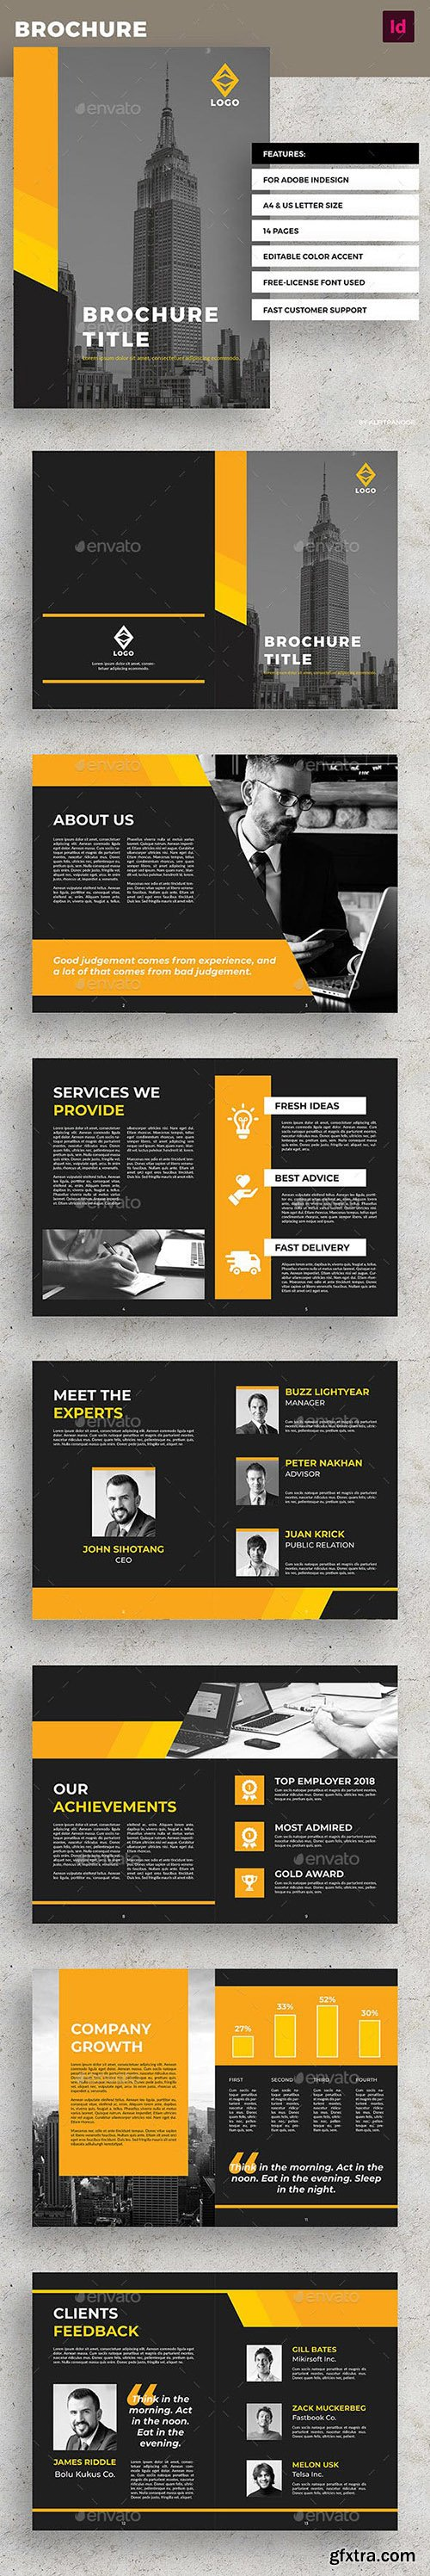 Yellow Business Brochure 22313937